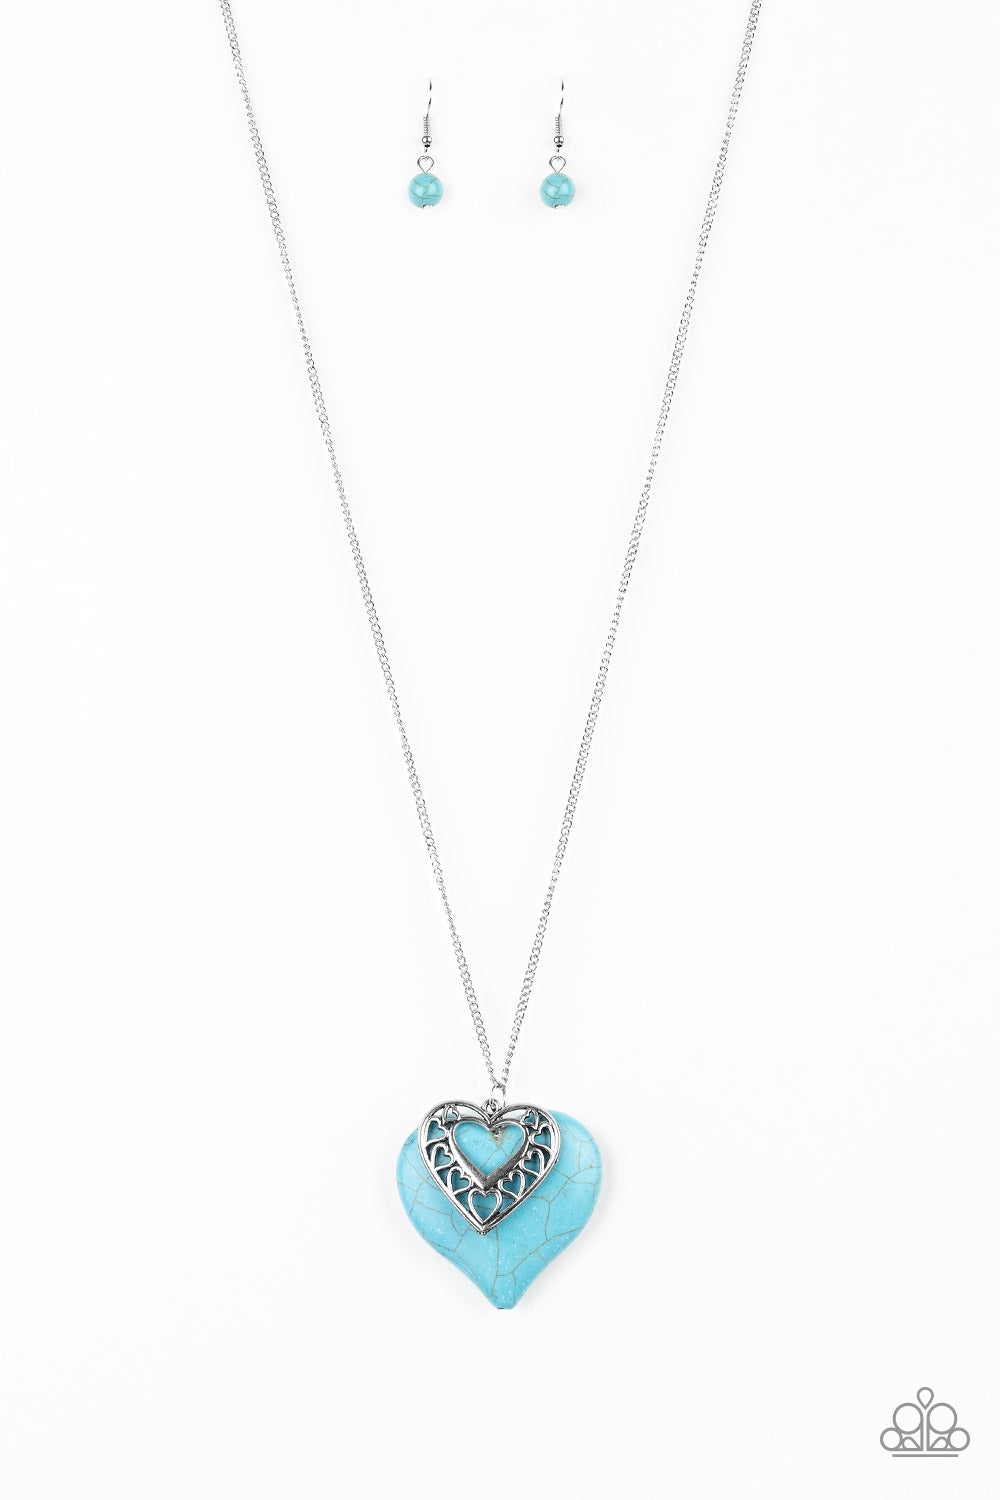 Southern Heart - Blue & Silver Necklace